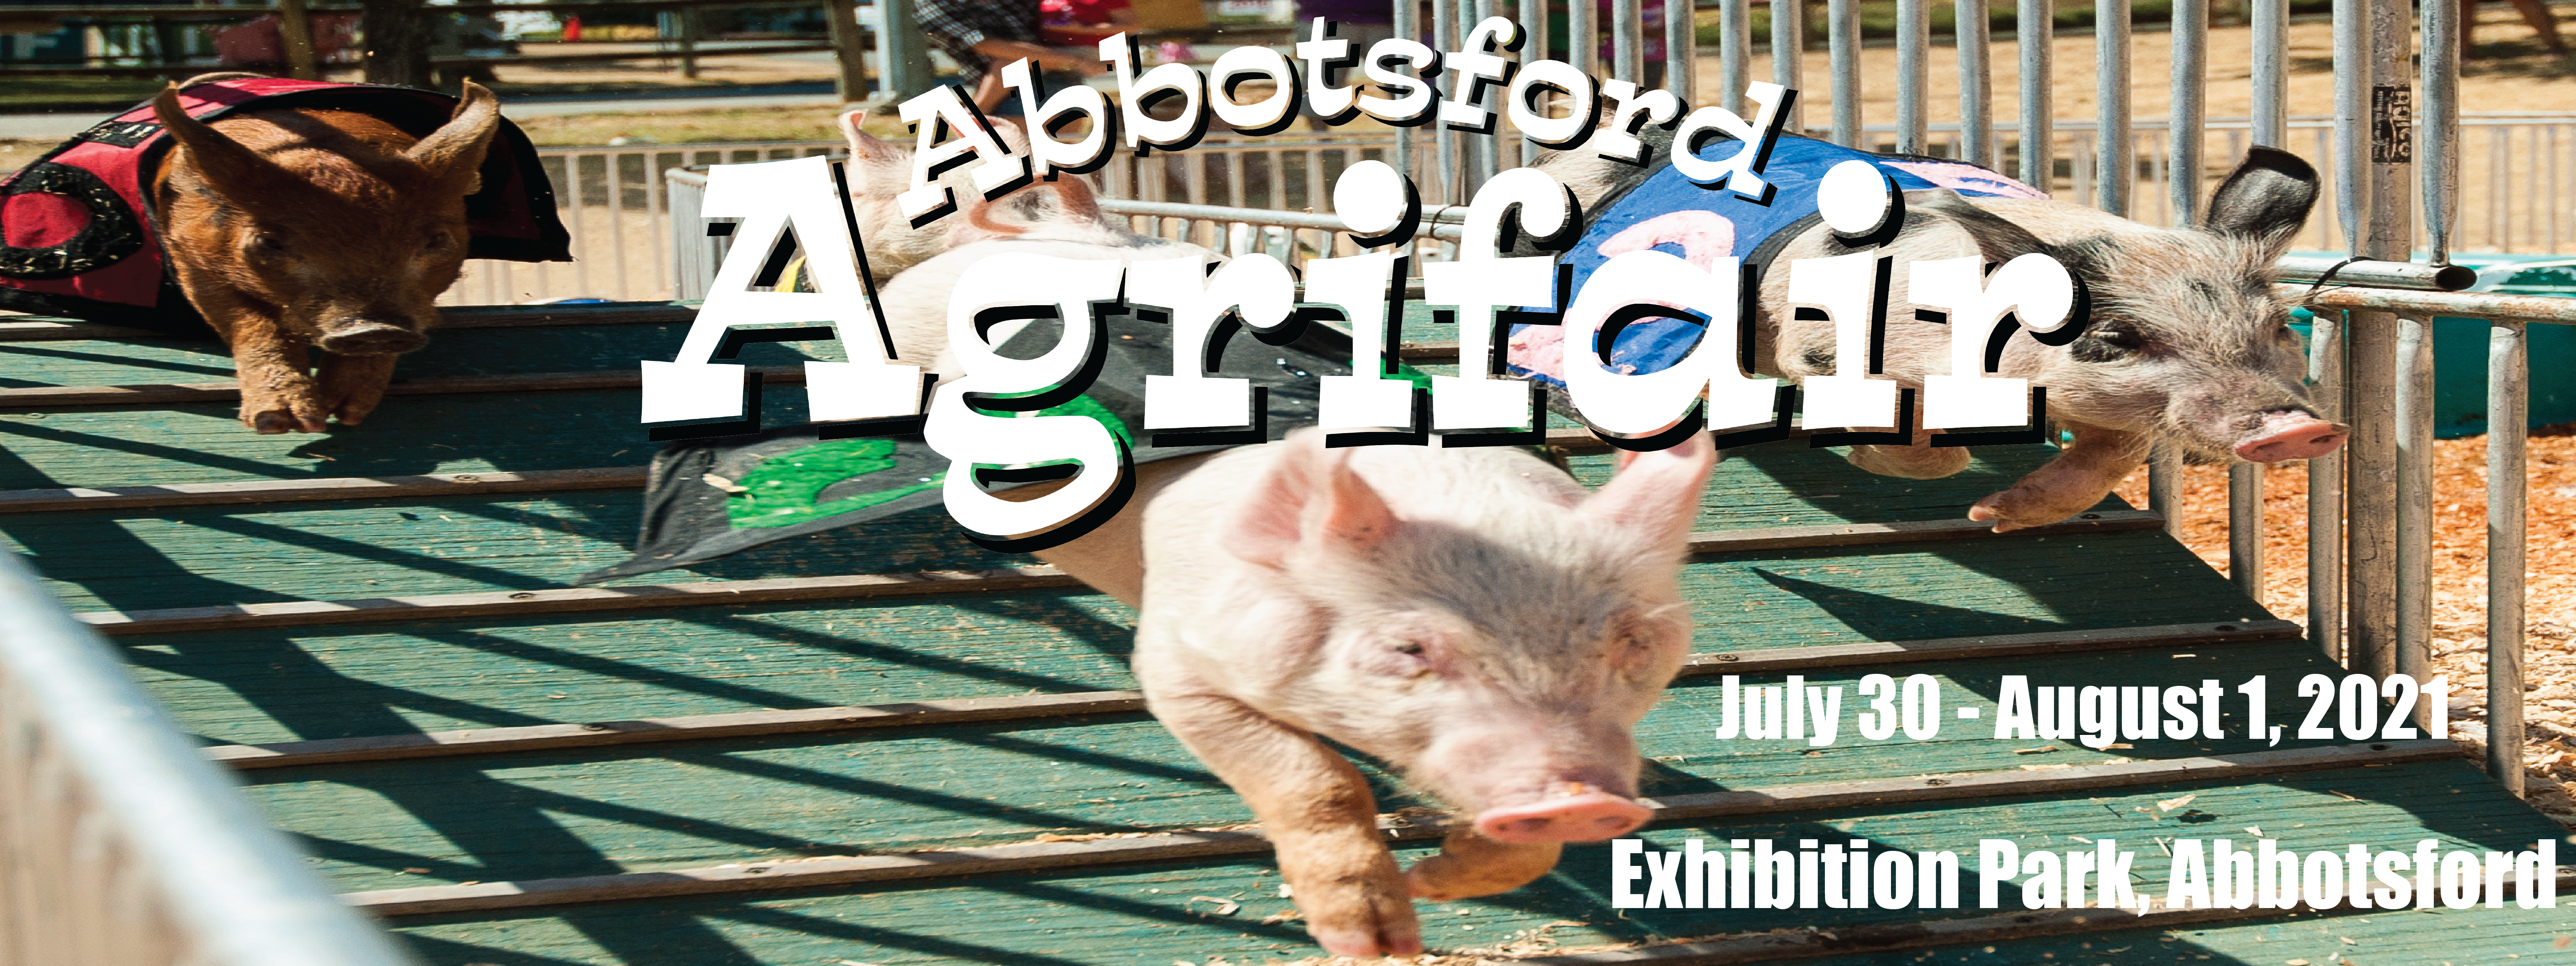 The Abbotsford Agrifair is proud to present: